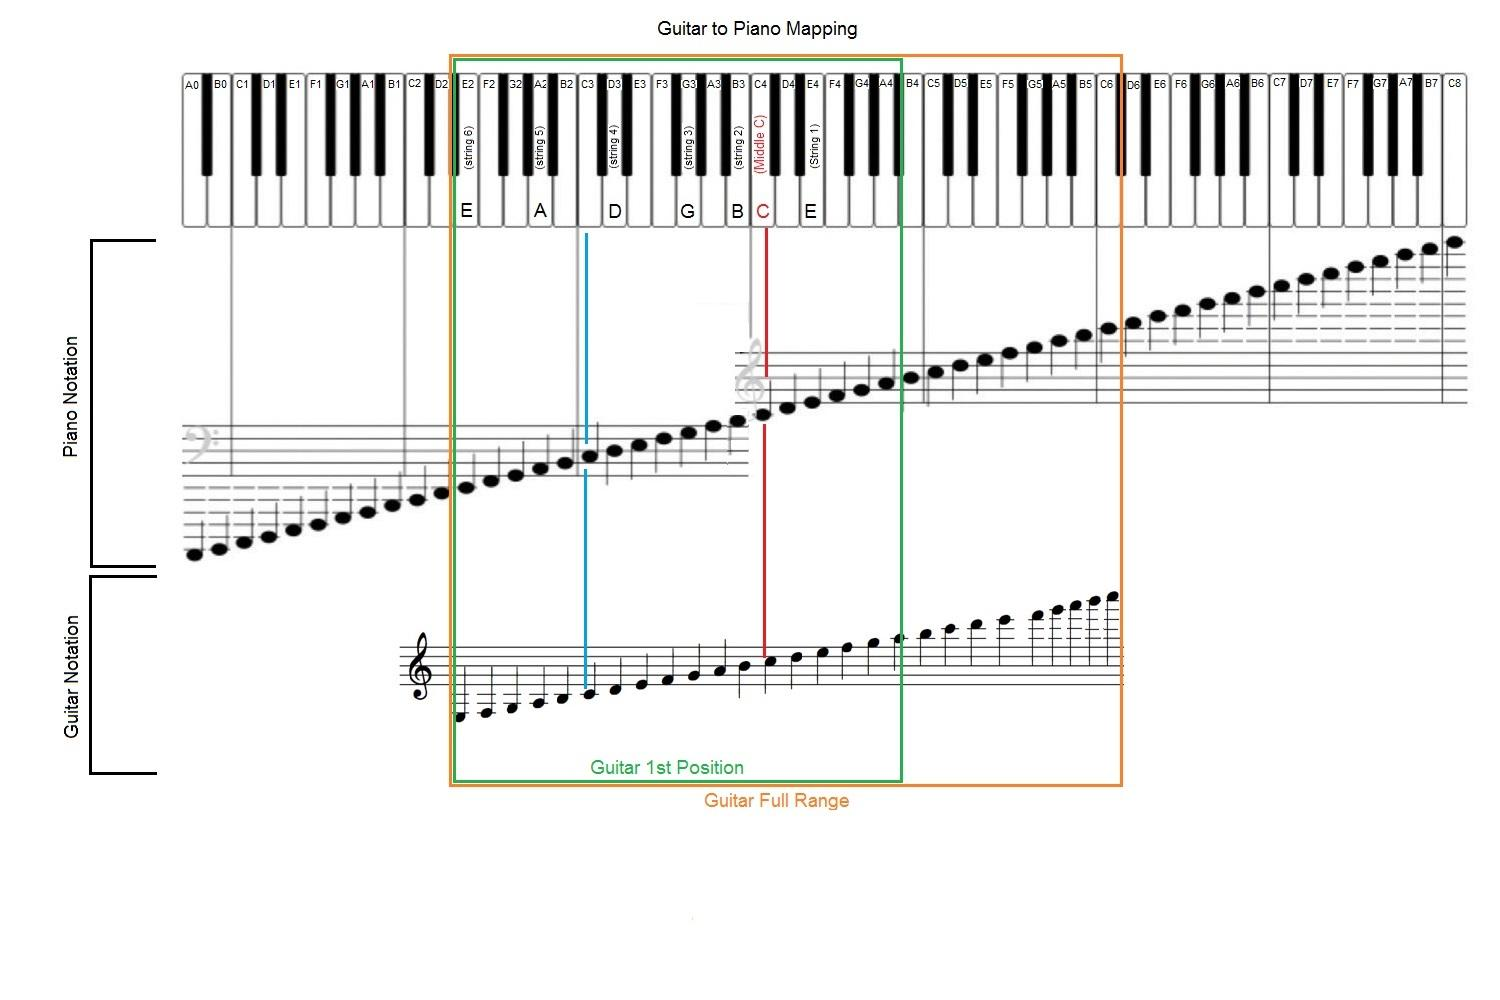 guitar to piano mapping